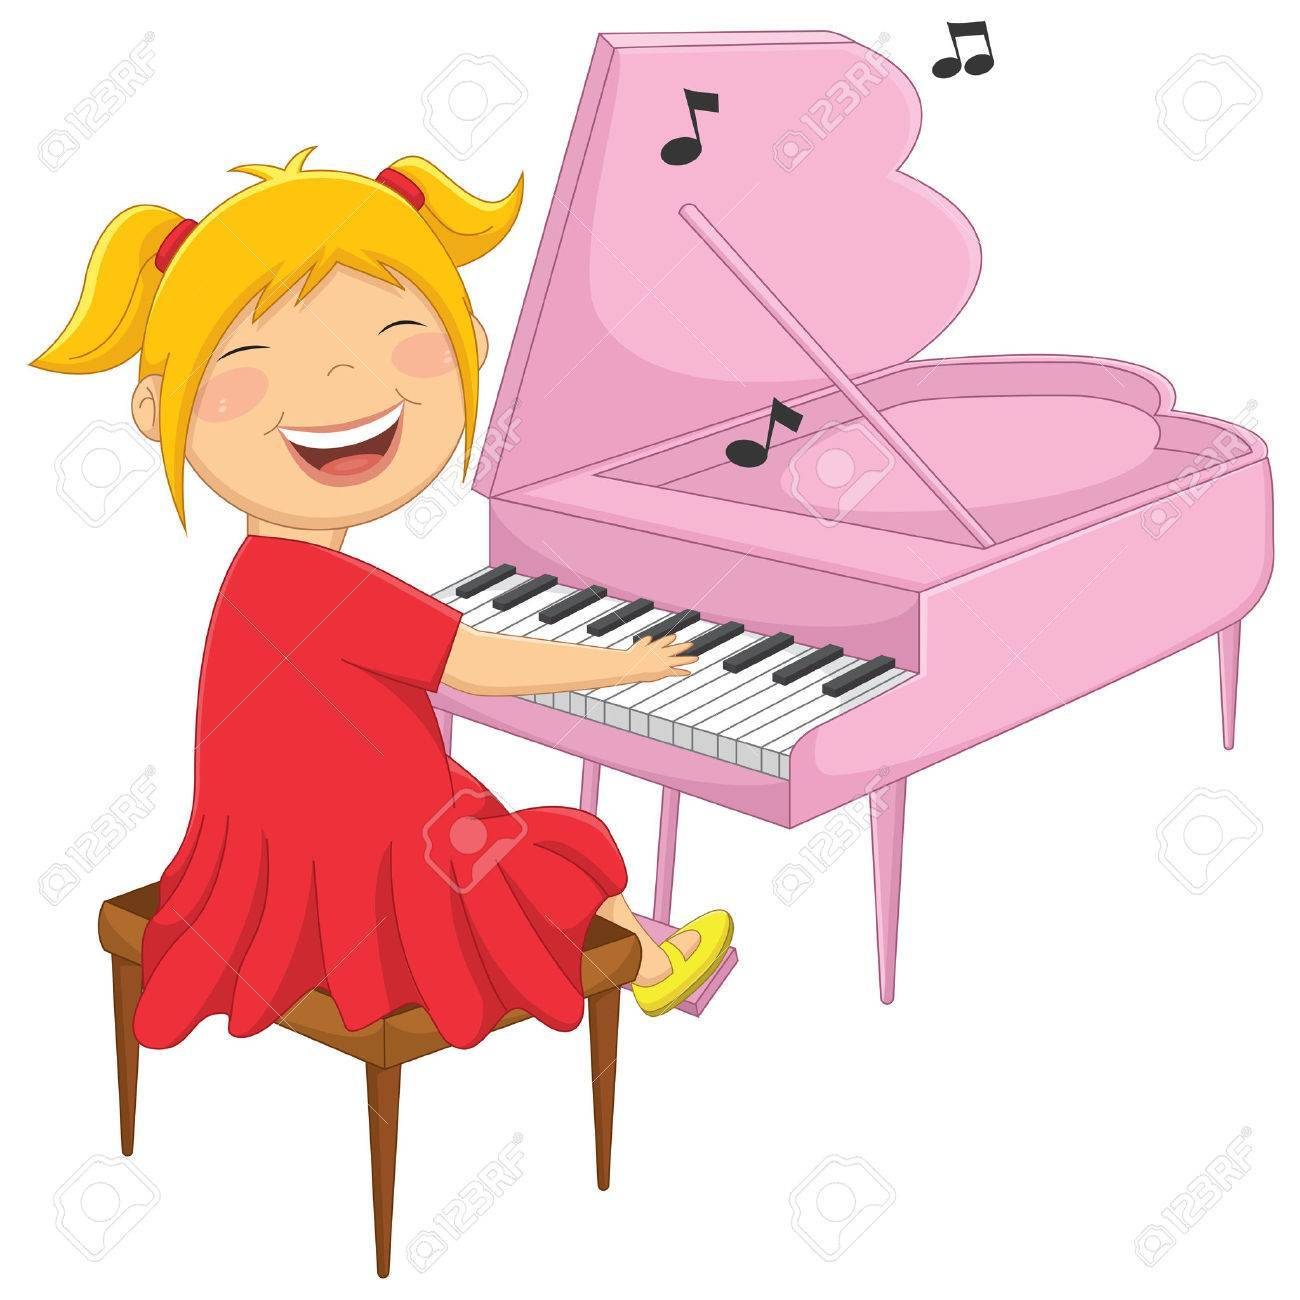 Kids playing piano clipart 7 » Clipart Portal.